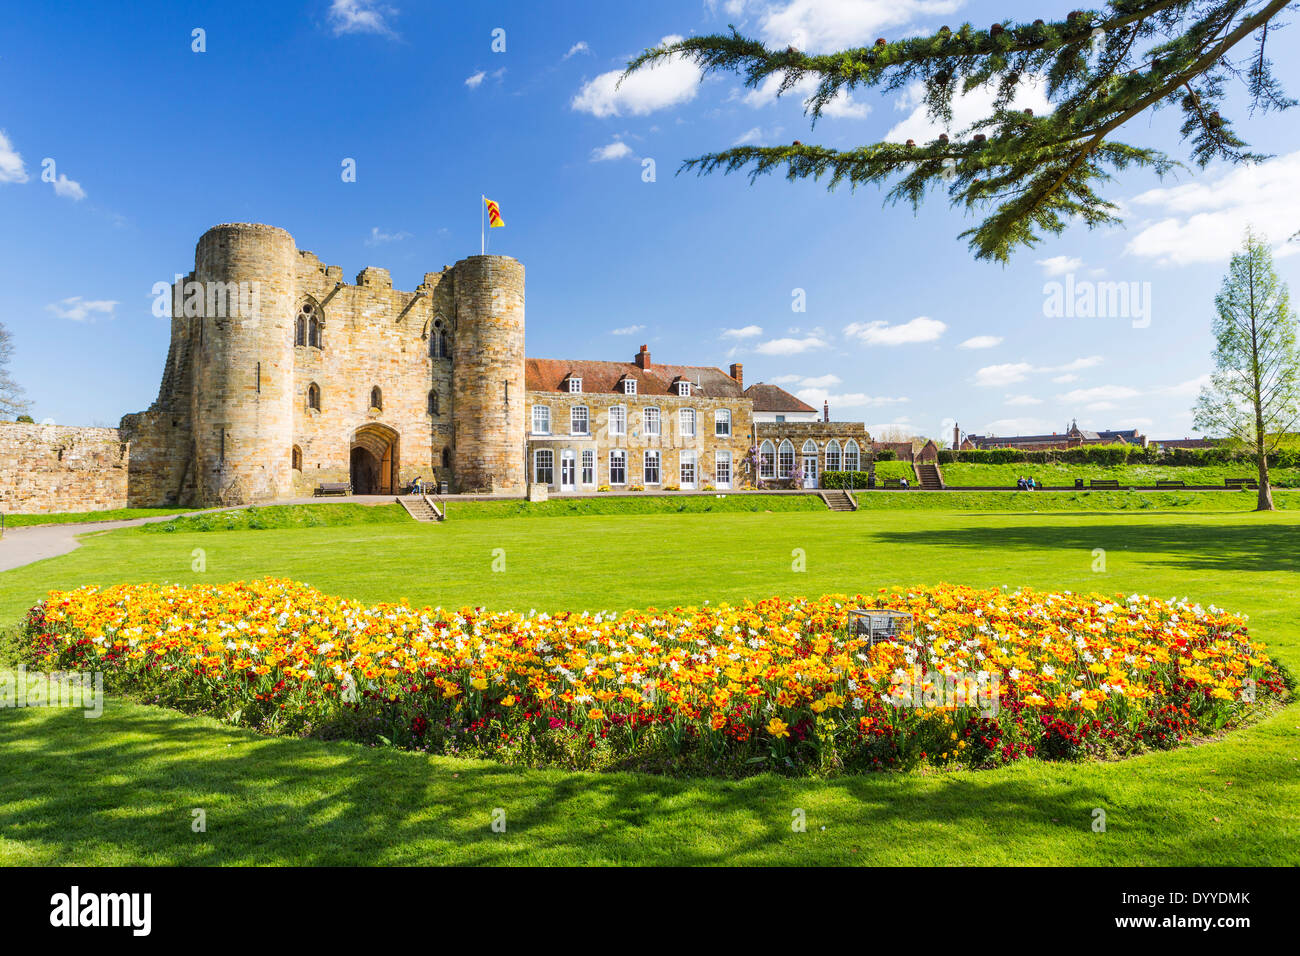 Tonbridge Castle in Springtime - Stock Image